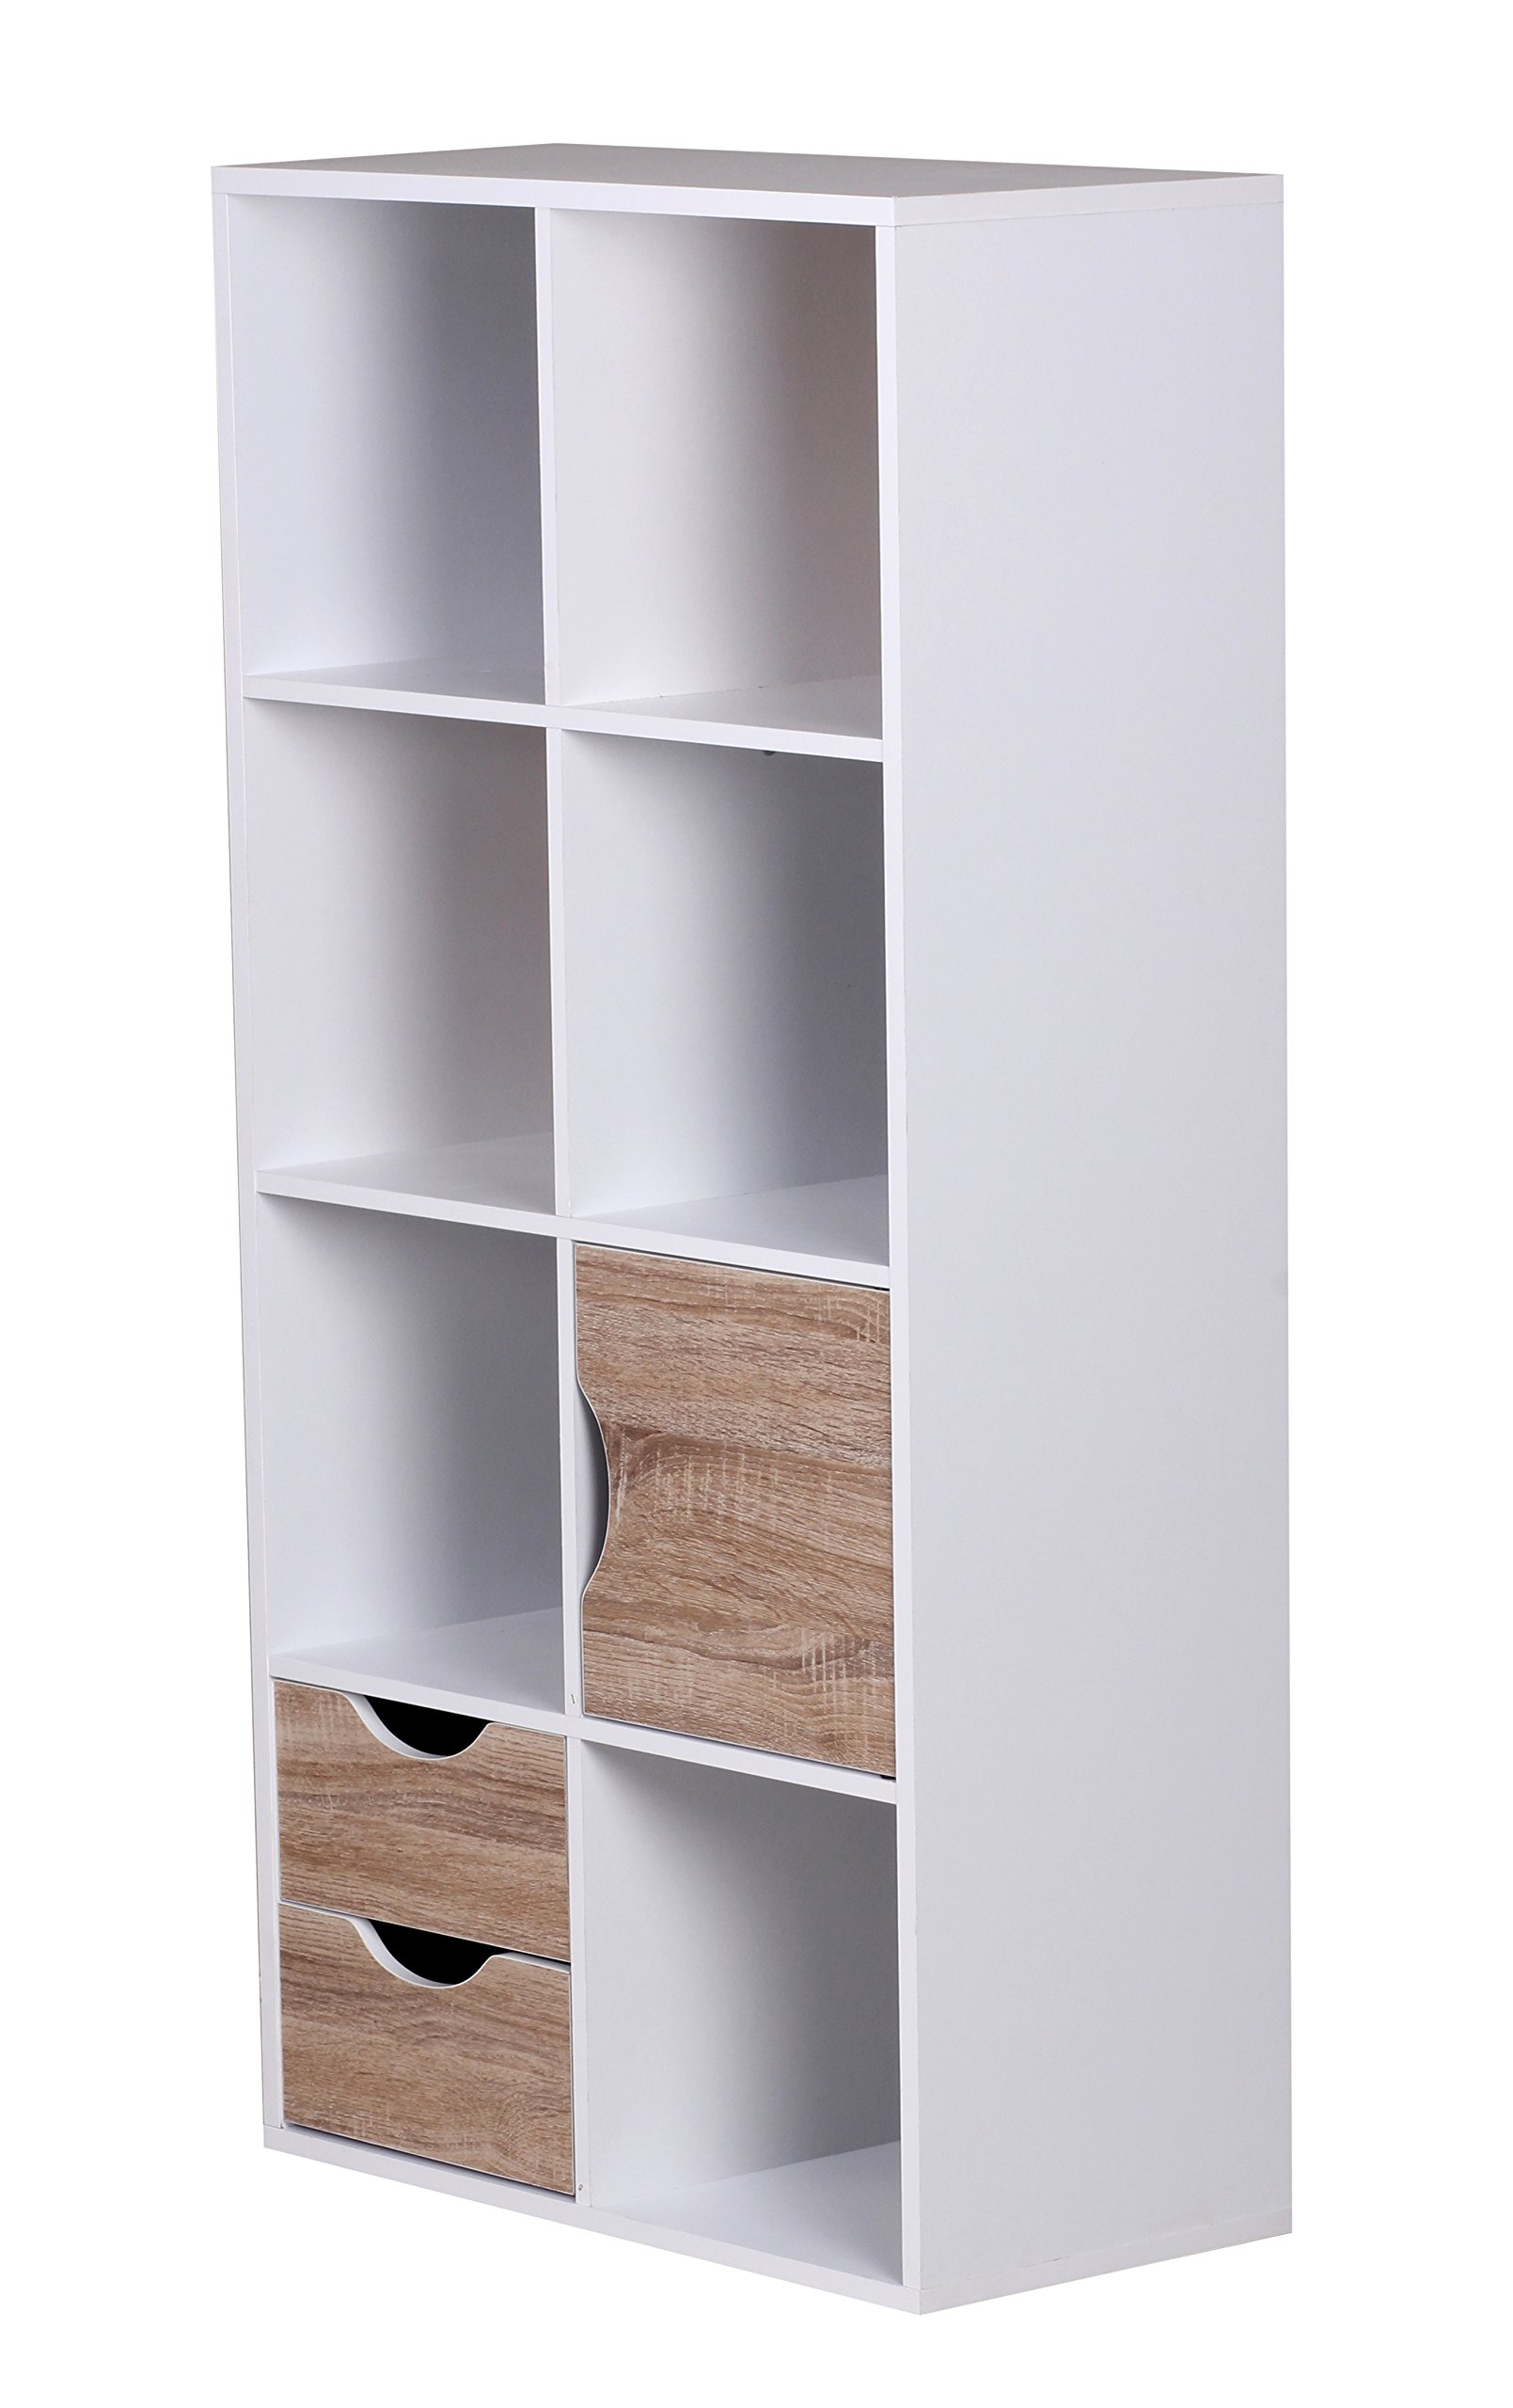 1plus biblioth que avec tiroirs et porte large blanc de sonoma inspid co. Black Bedroom Furniture Sets. Home Design Ideas